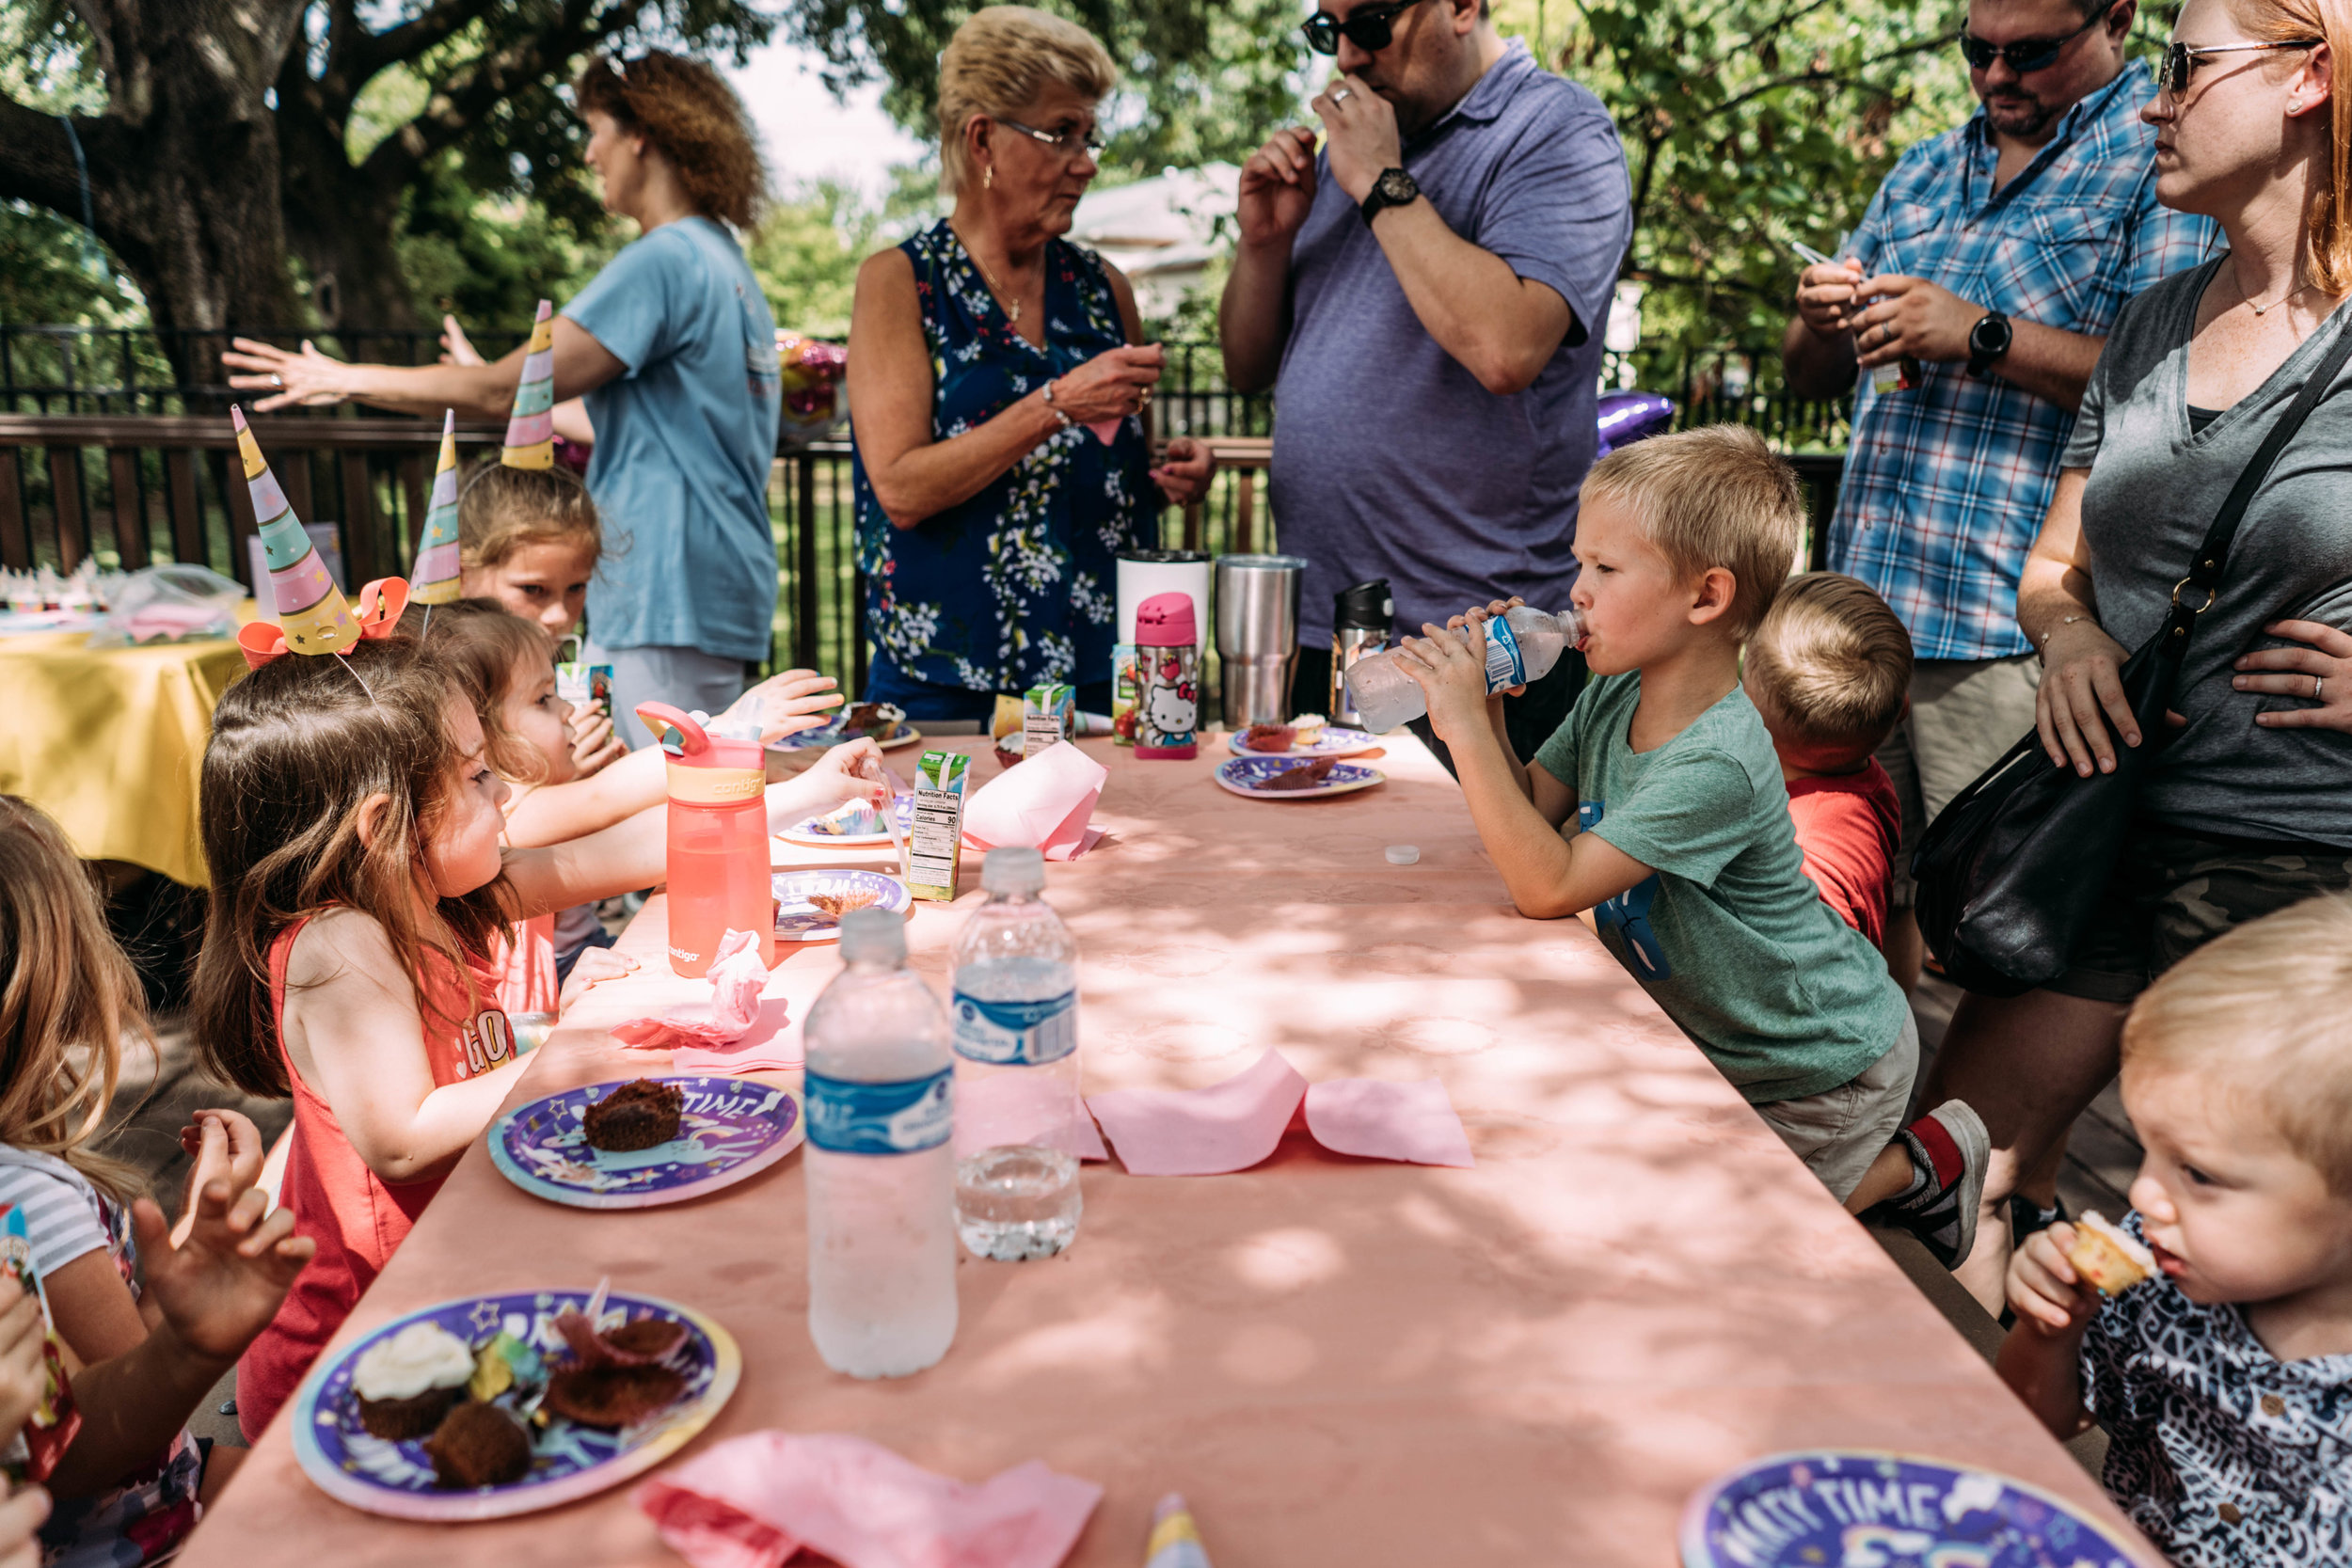 birthday party at the park-32.jpg